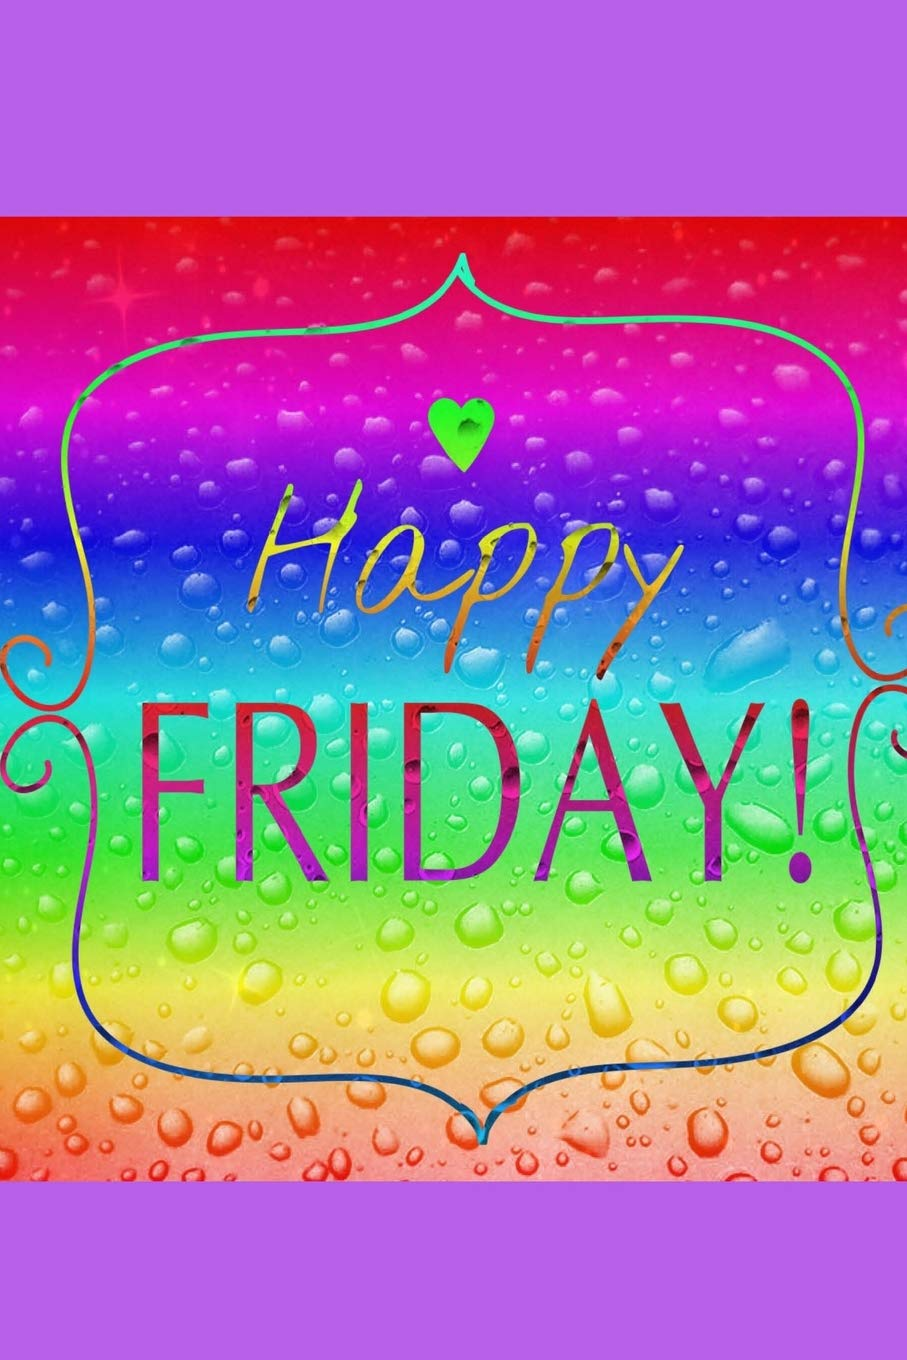 Happy Friday Unruled Blank Plain Unlined Notebook 100 Pages 6 X 9 With A Gorgeous Cover Smith Donna B 9781729744758 Amazon Com Books